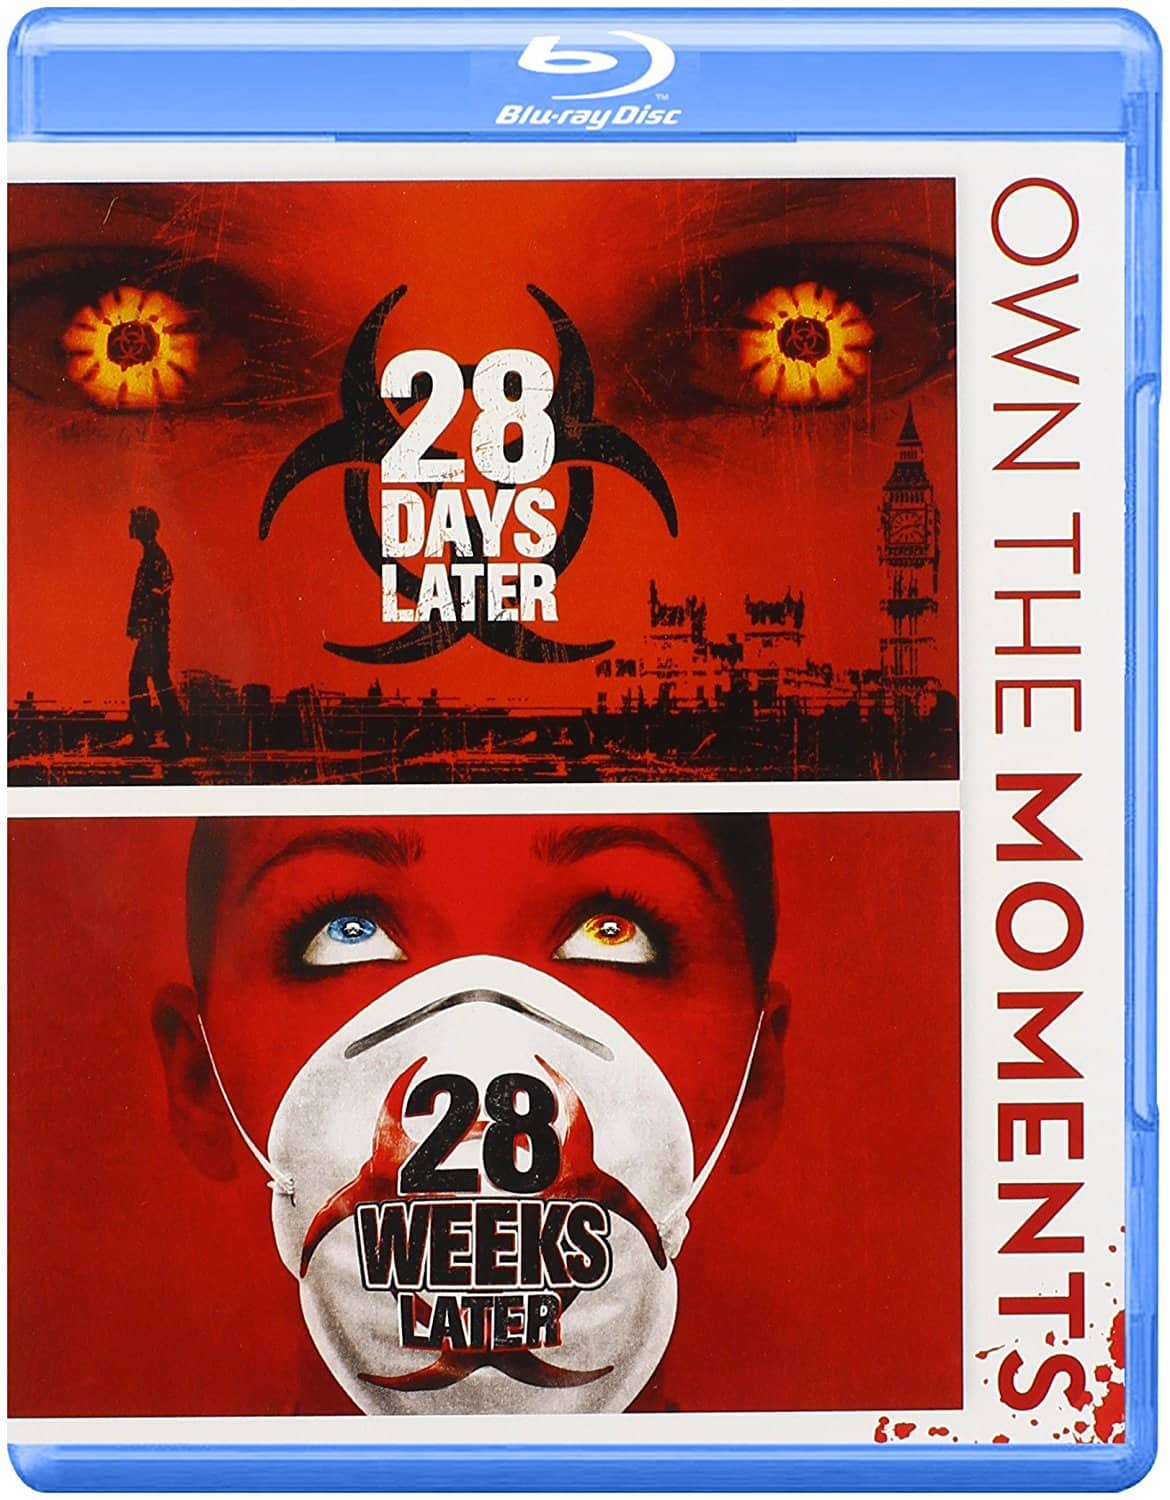 28 Days later / 28 weeks later combo Blu Ray on Amazon.com for $7.88